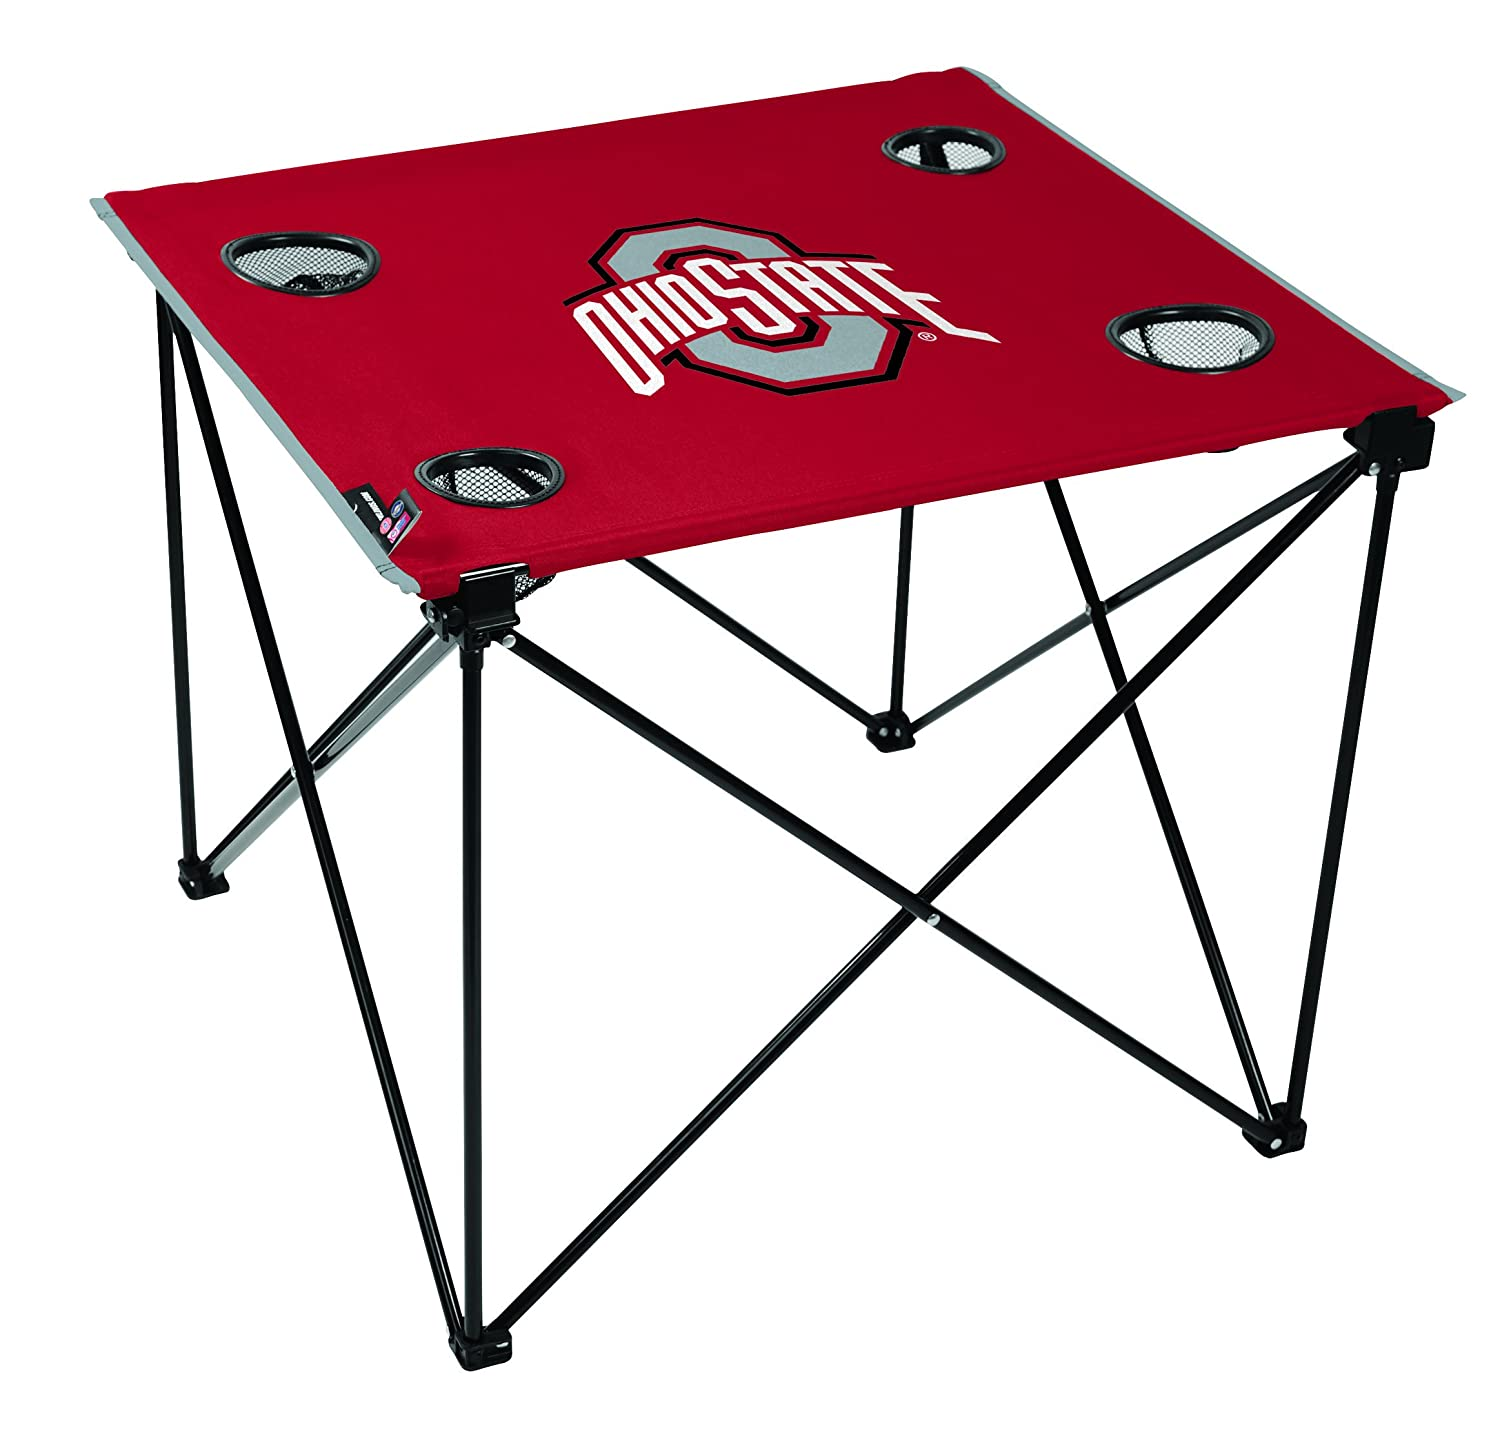 NCAA Deluxe Tailgate Table All Team Options